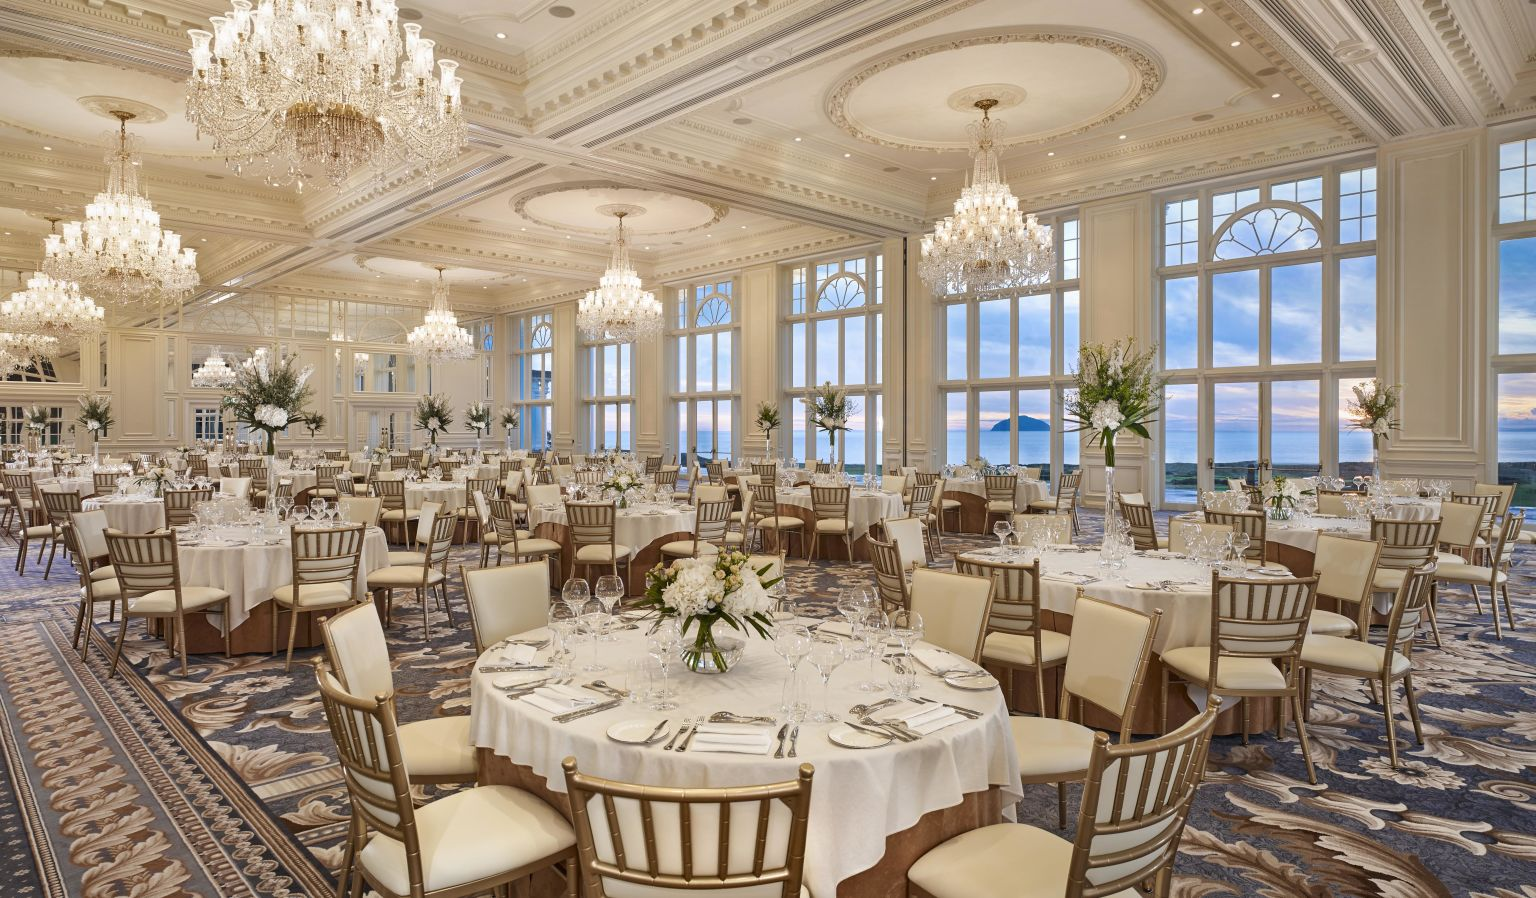 Wedding venues ayr trump turnberry wedding venues destination large ballroom with dining tables reception venue table settings solutioingenieria Choice Image